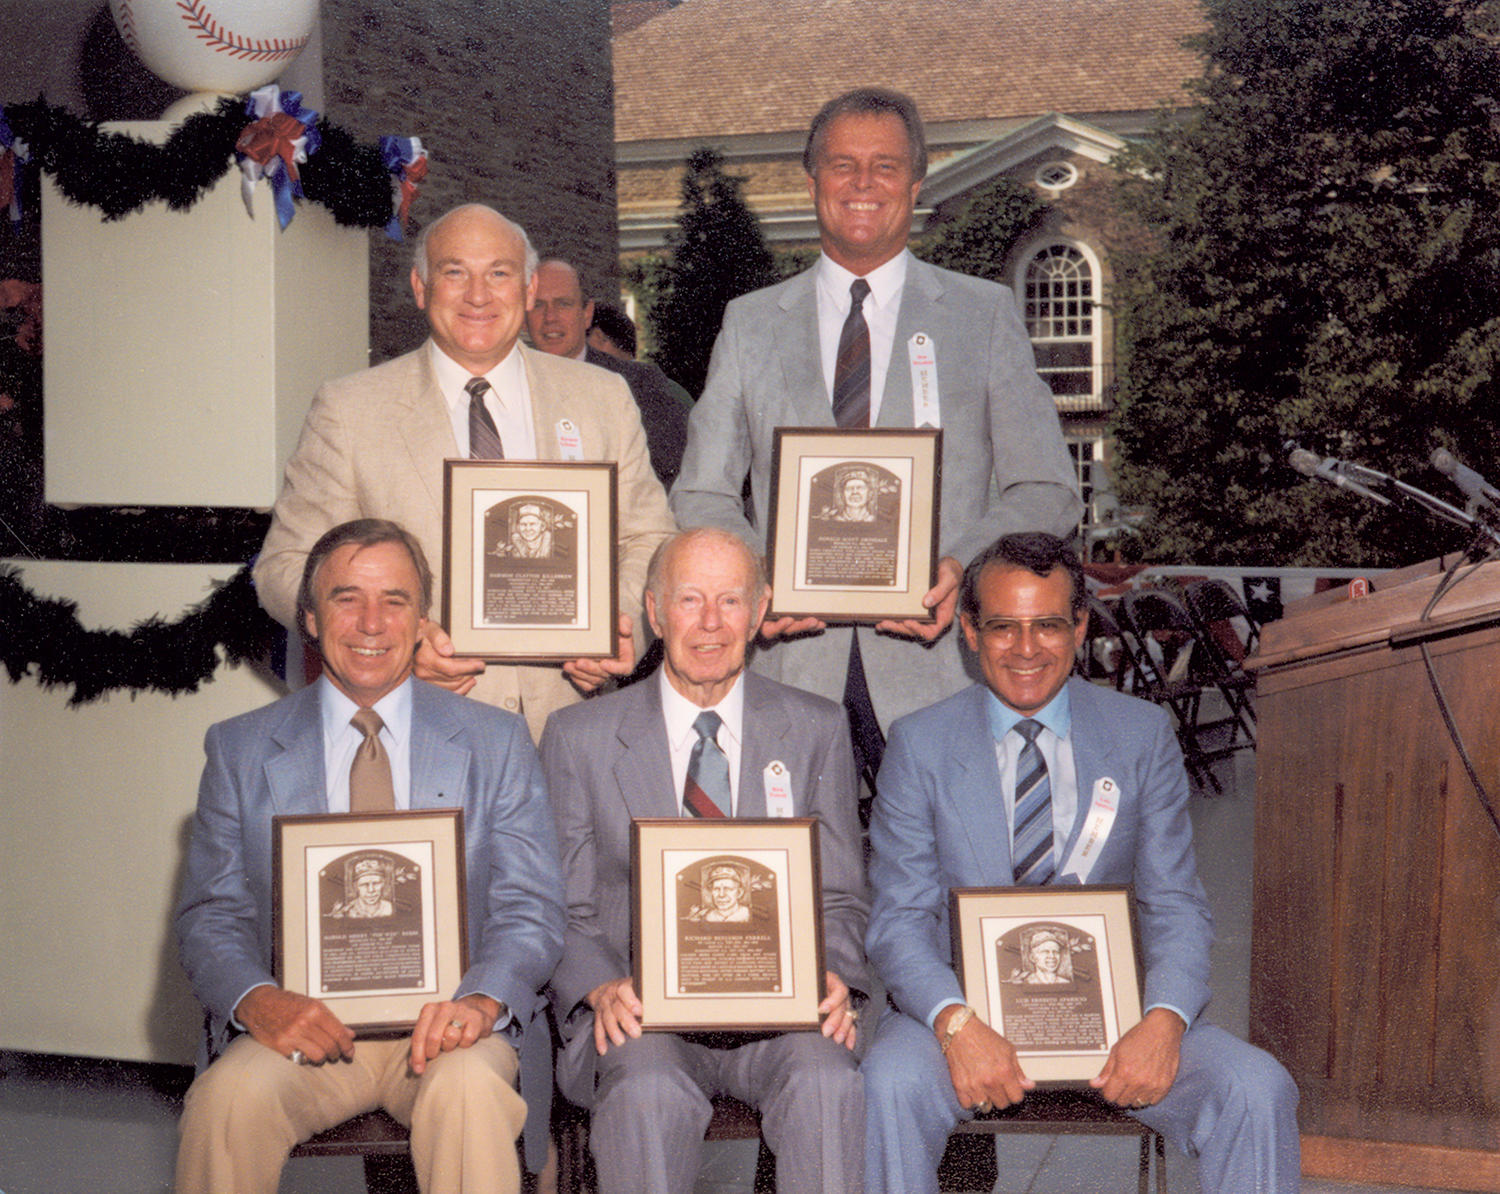 With the election of Don Drysdale (pictured above, far right on the top row) and Pee Wee Reese (on the bottom row, to the far left) in 1984, the Brooklyn Dodgers of the 1950s celebrated a reunion in Cooperstown. (National Baseball Hall of Fame and Museum)